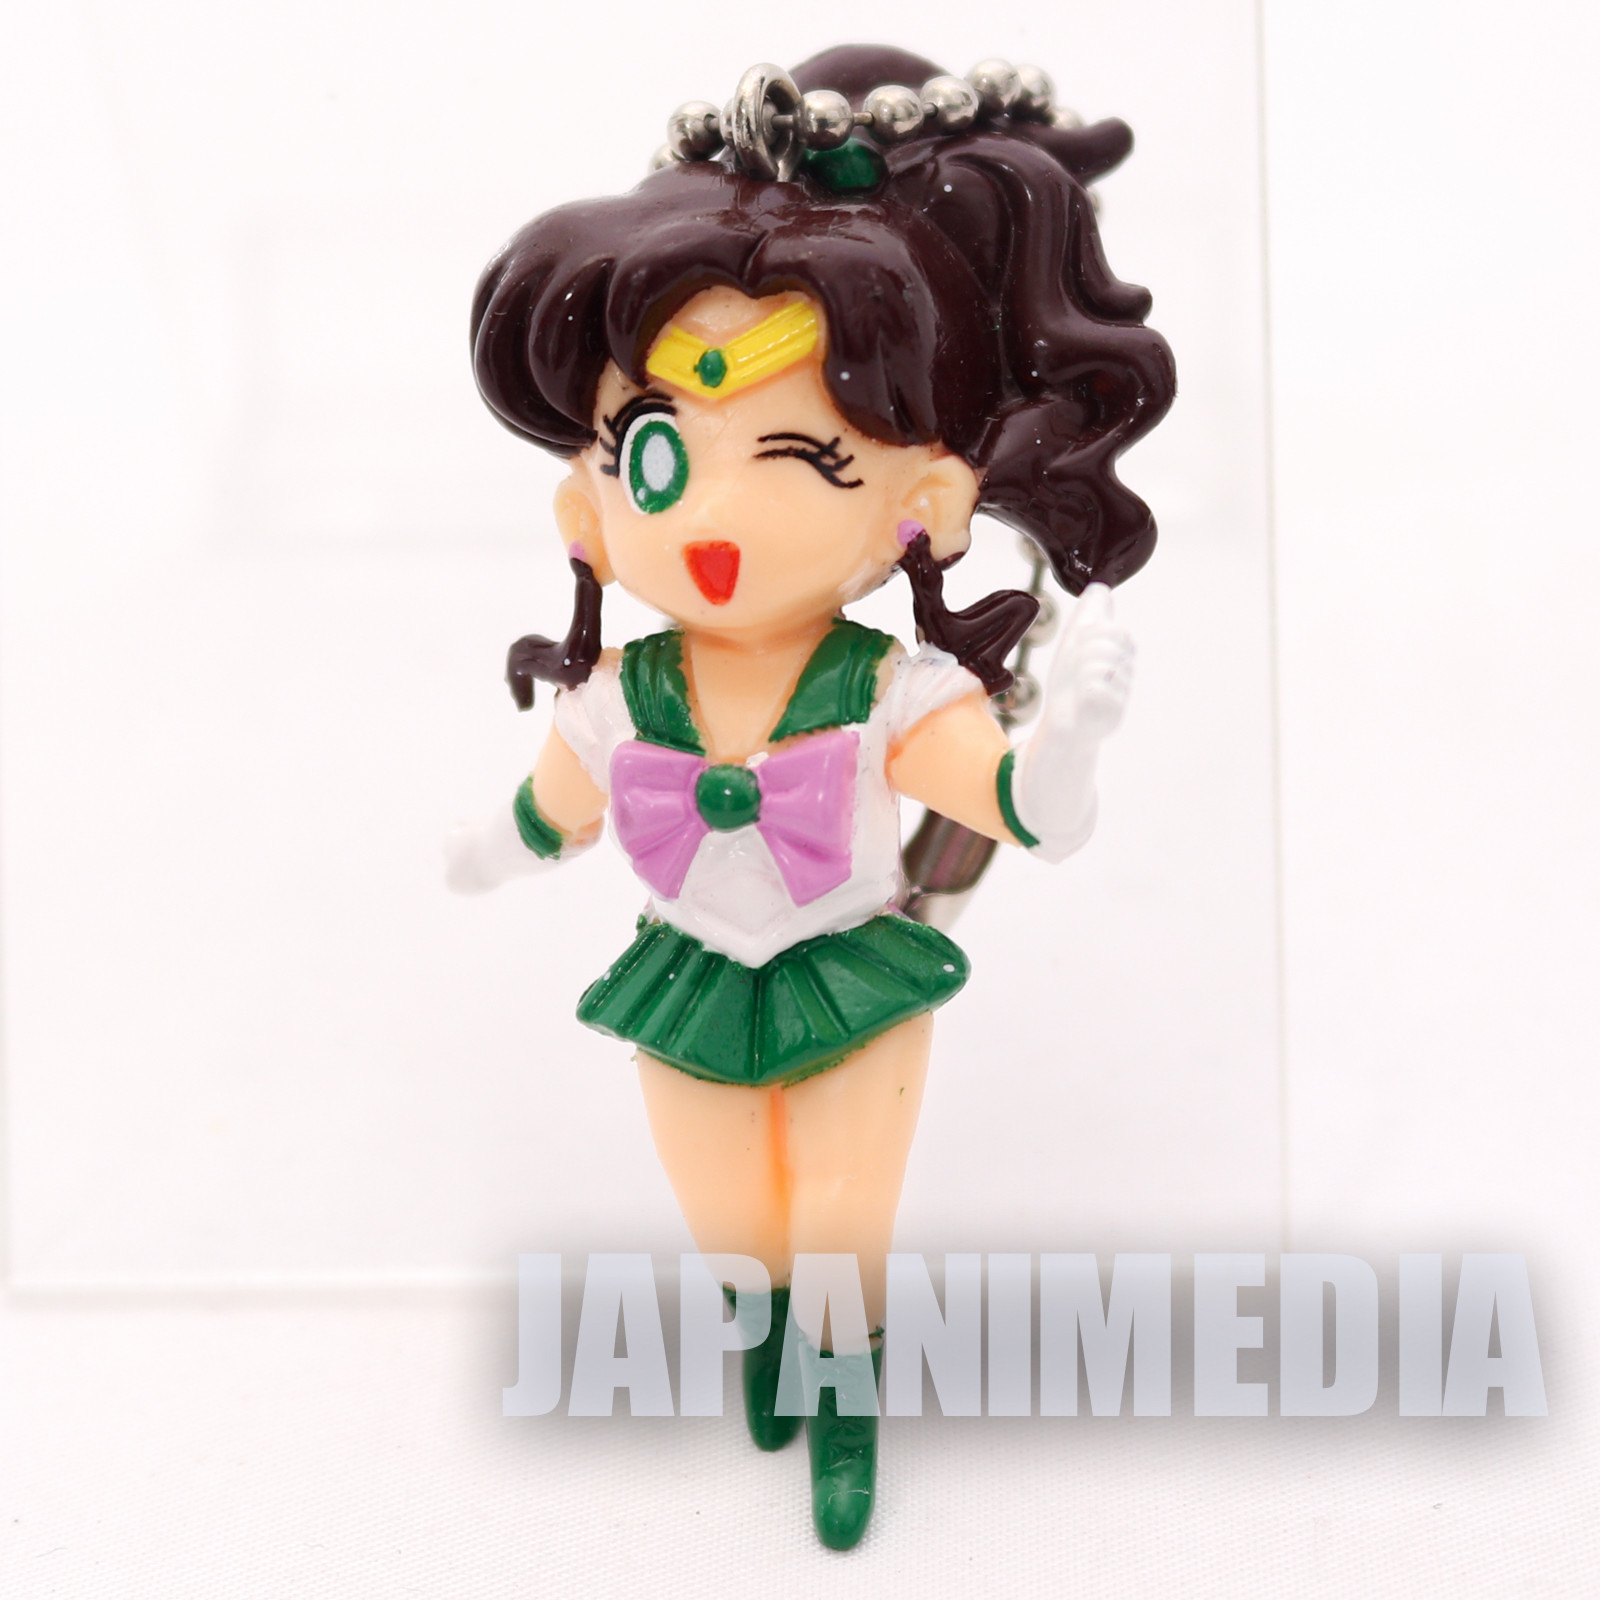 Sailor Moon Jupiter Makoto Kino Figure Ballchain JAPAN ANIME MANGA